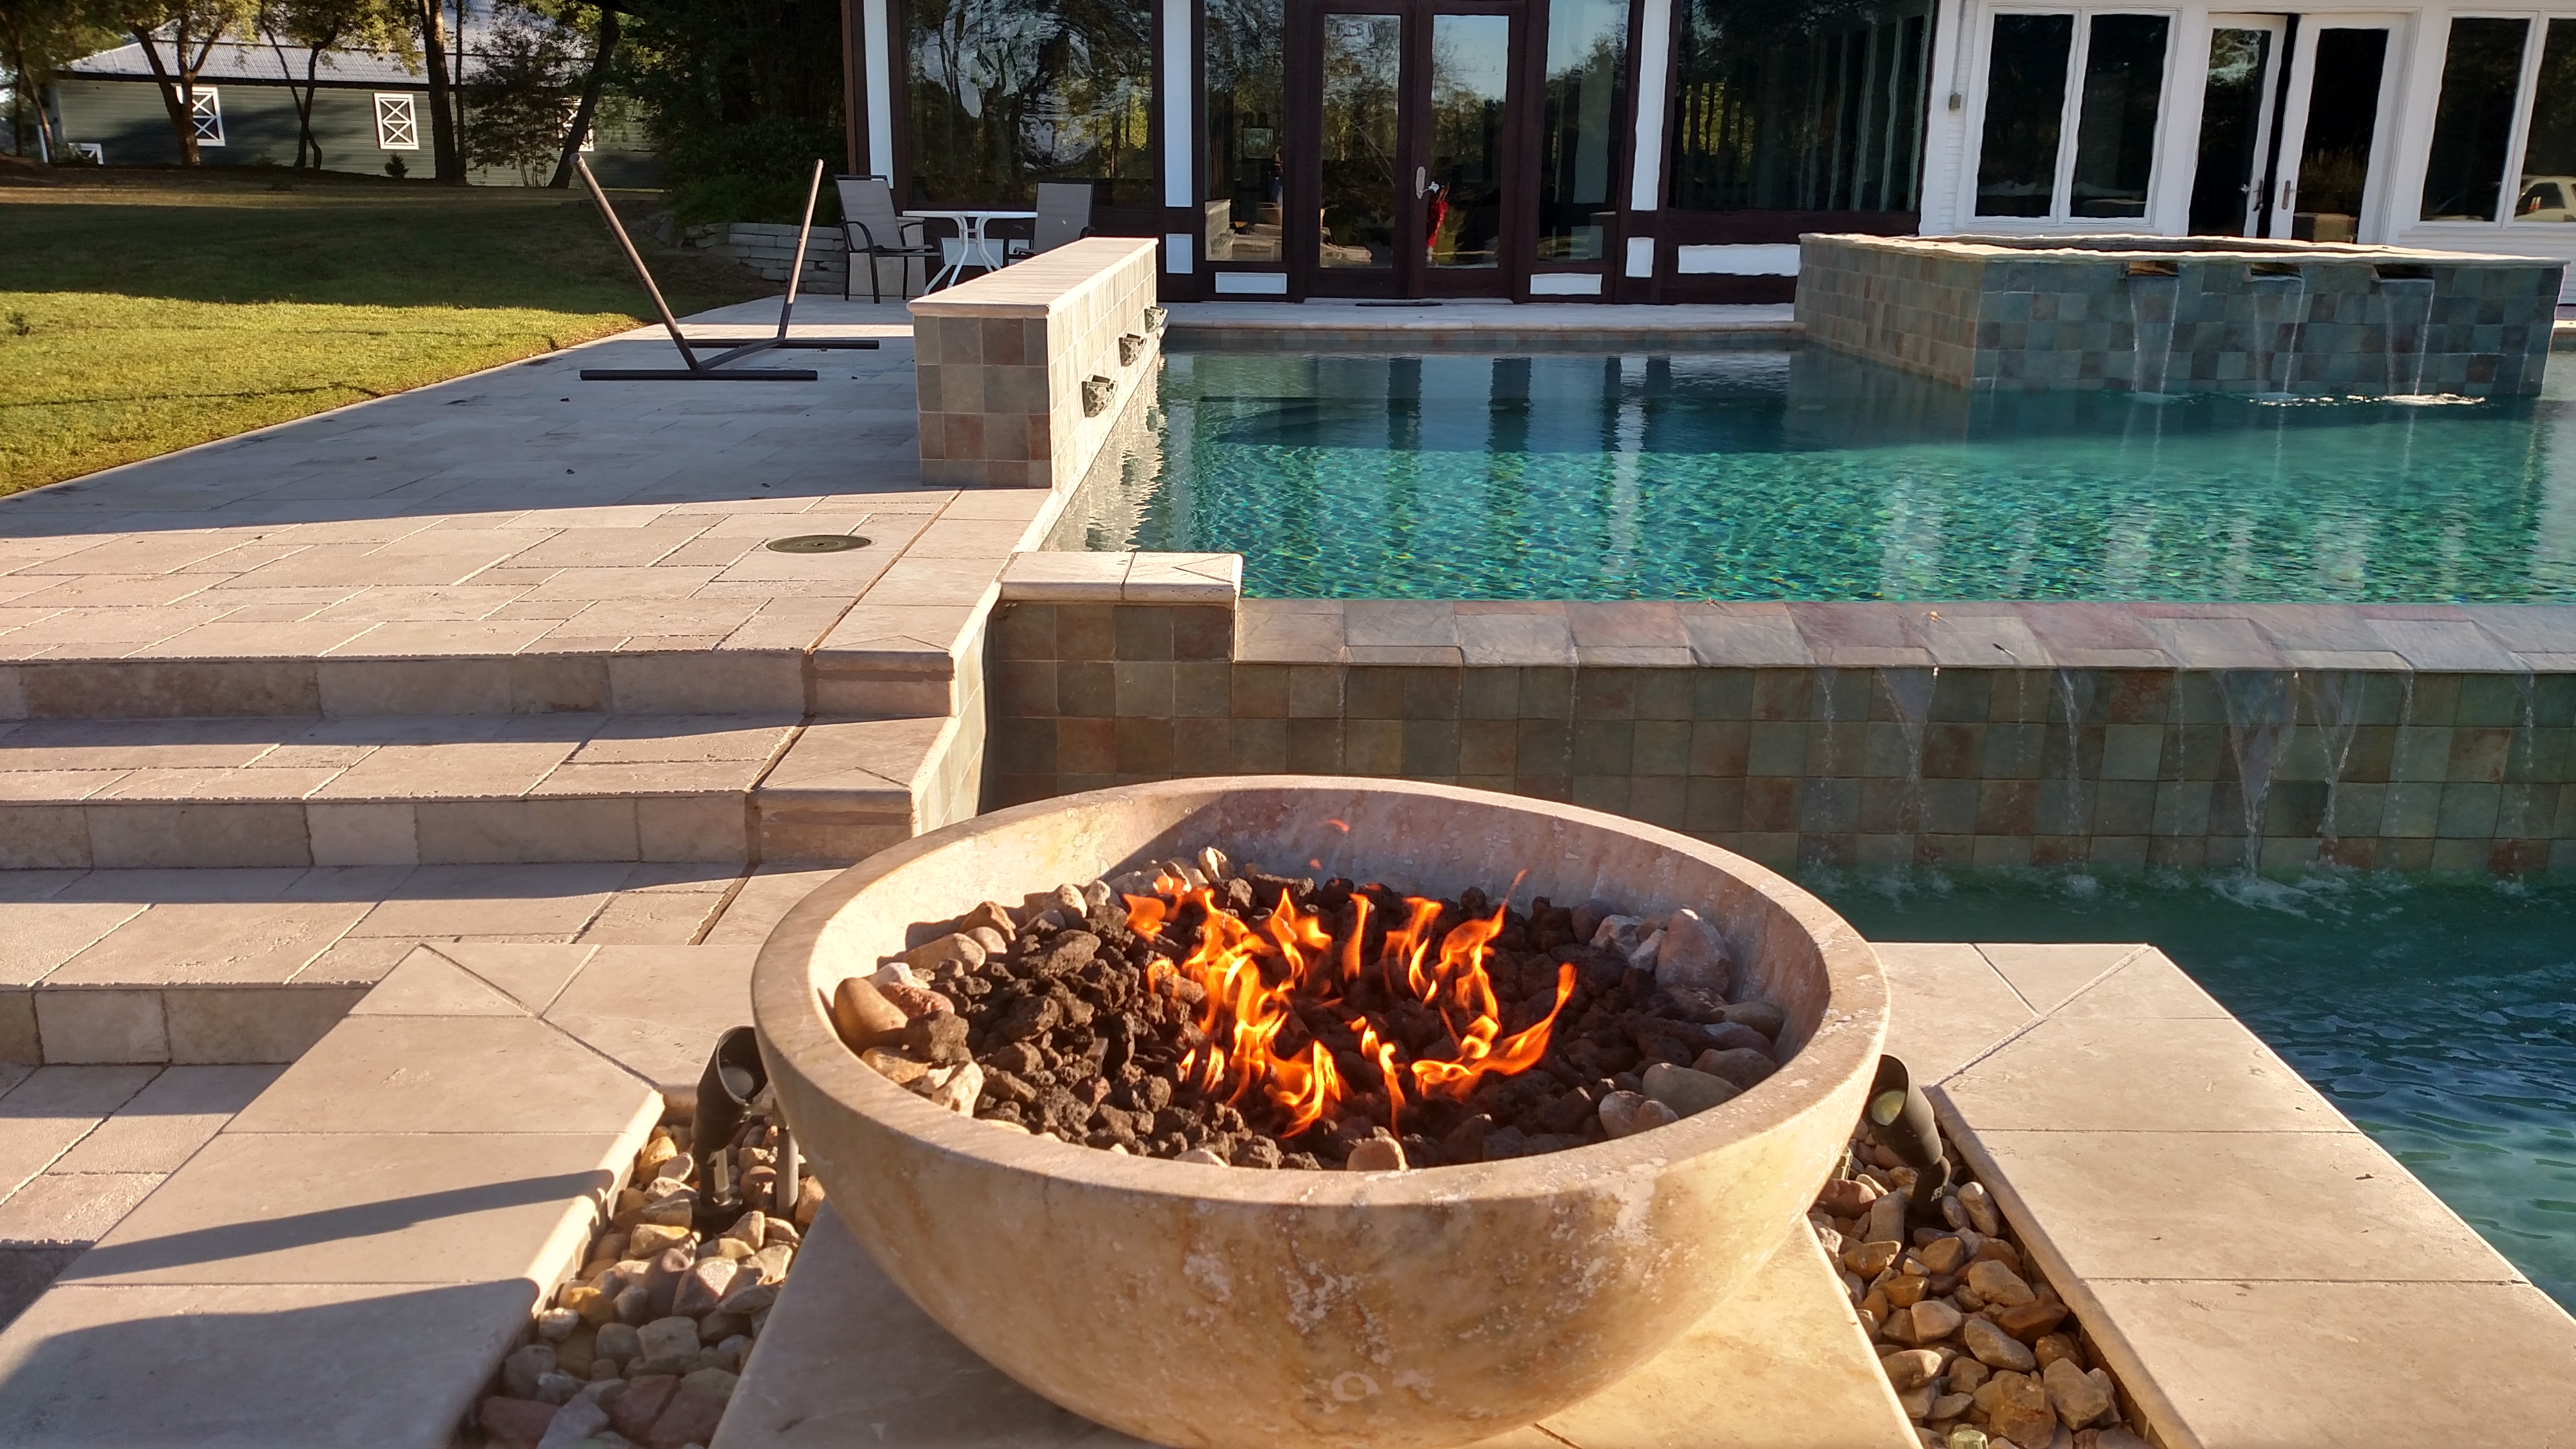 fire bowl next to pool